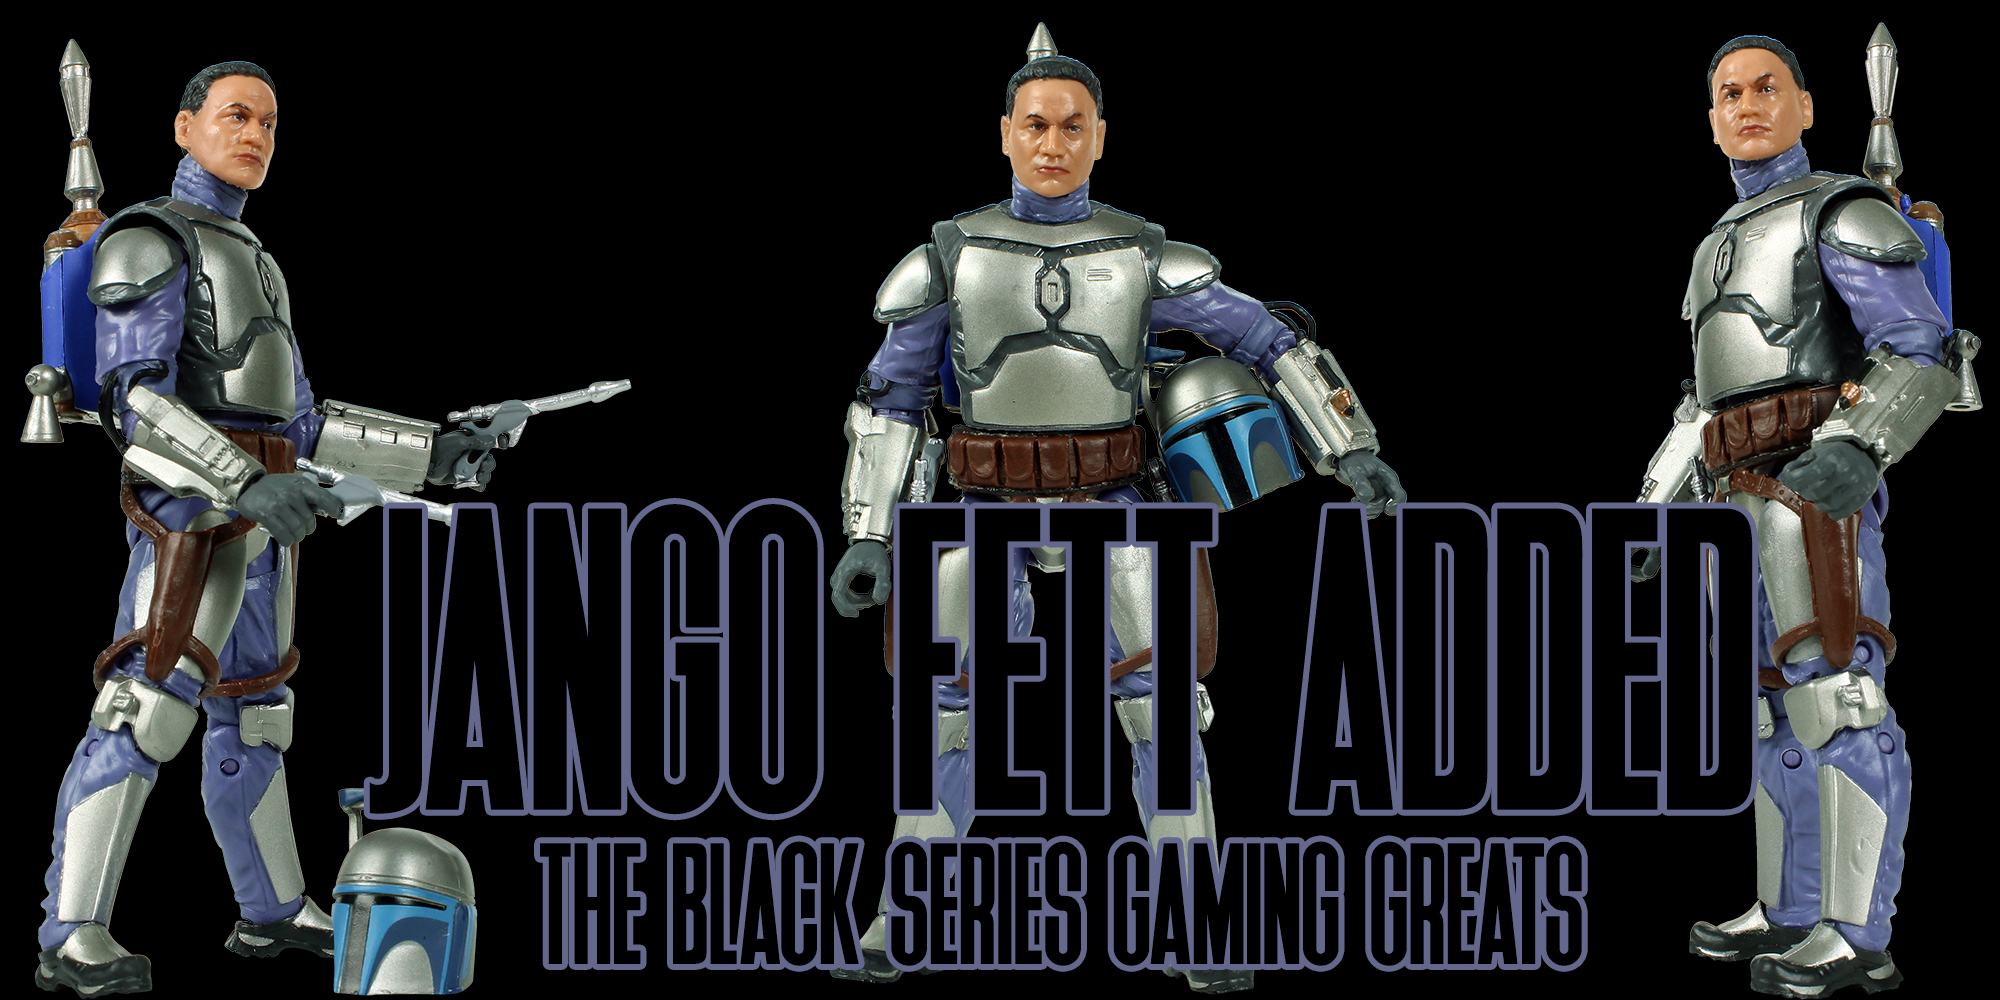 Gaming Greats Jango Fett